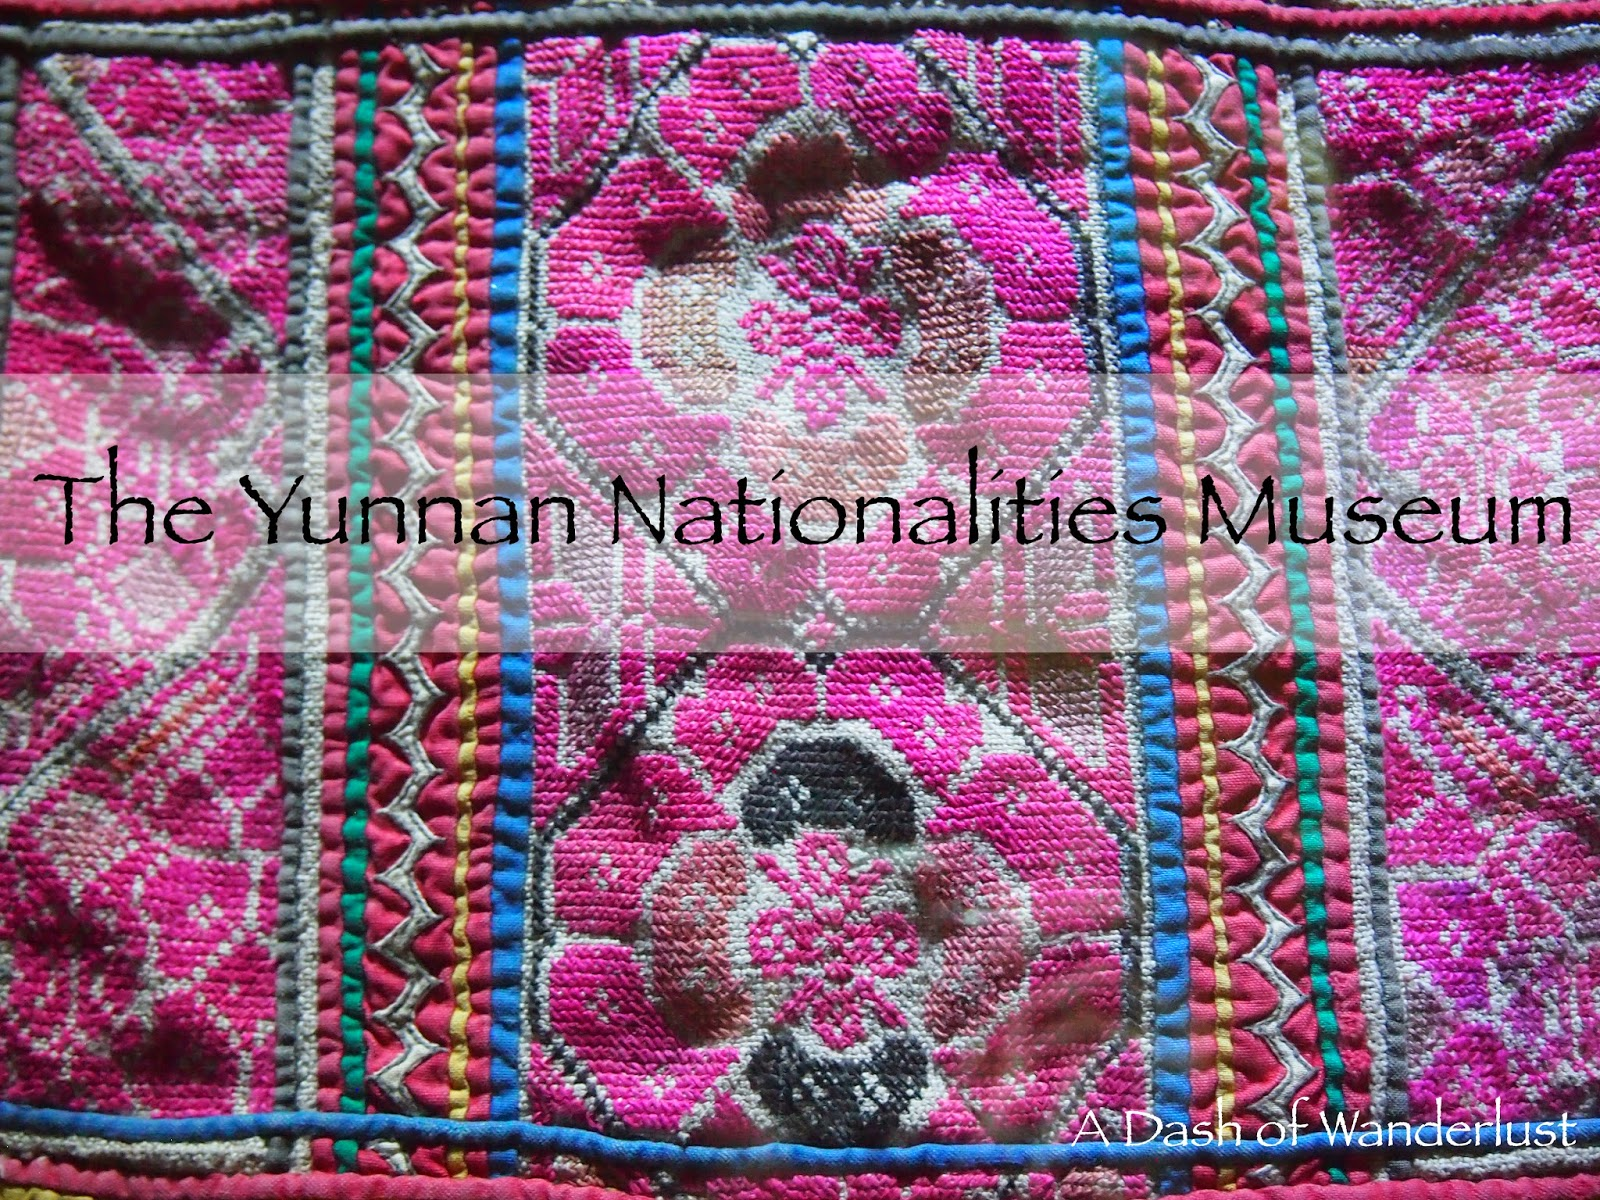 Miao embroidery from the Yunnan Nationalities Museum in Kunming, China